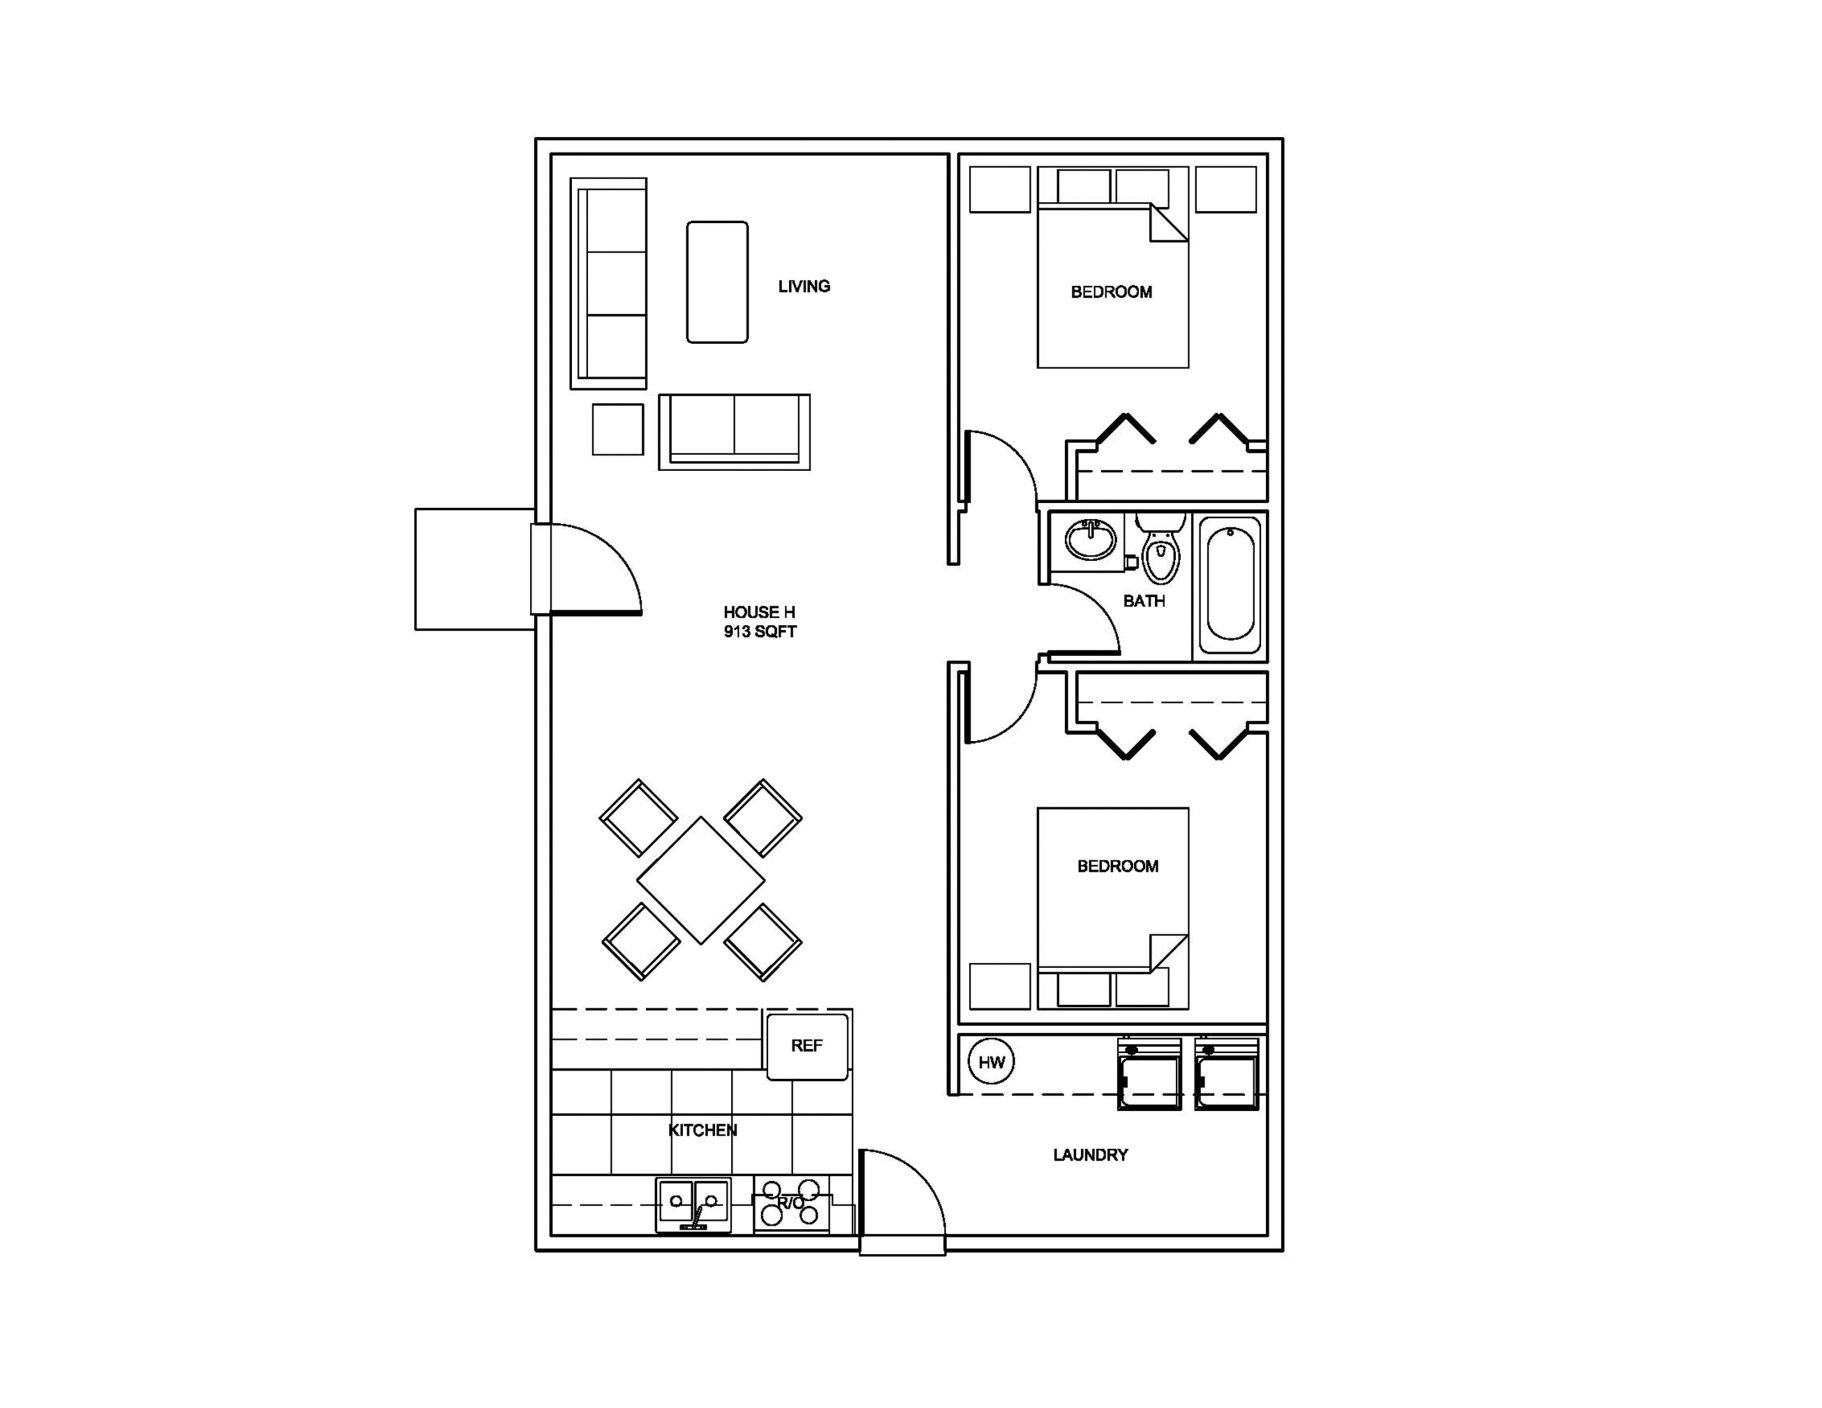 Farm House Small house plans, Small house floor plans